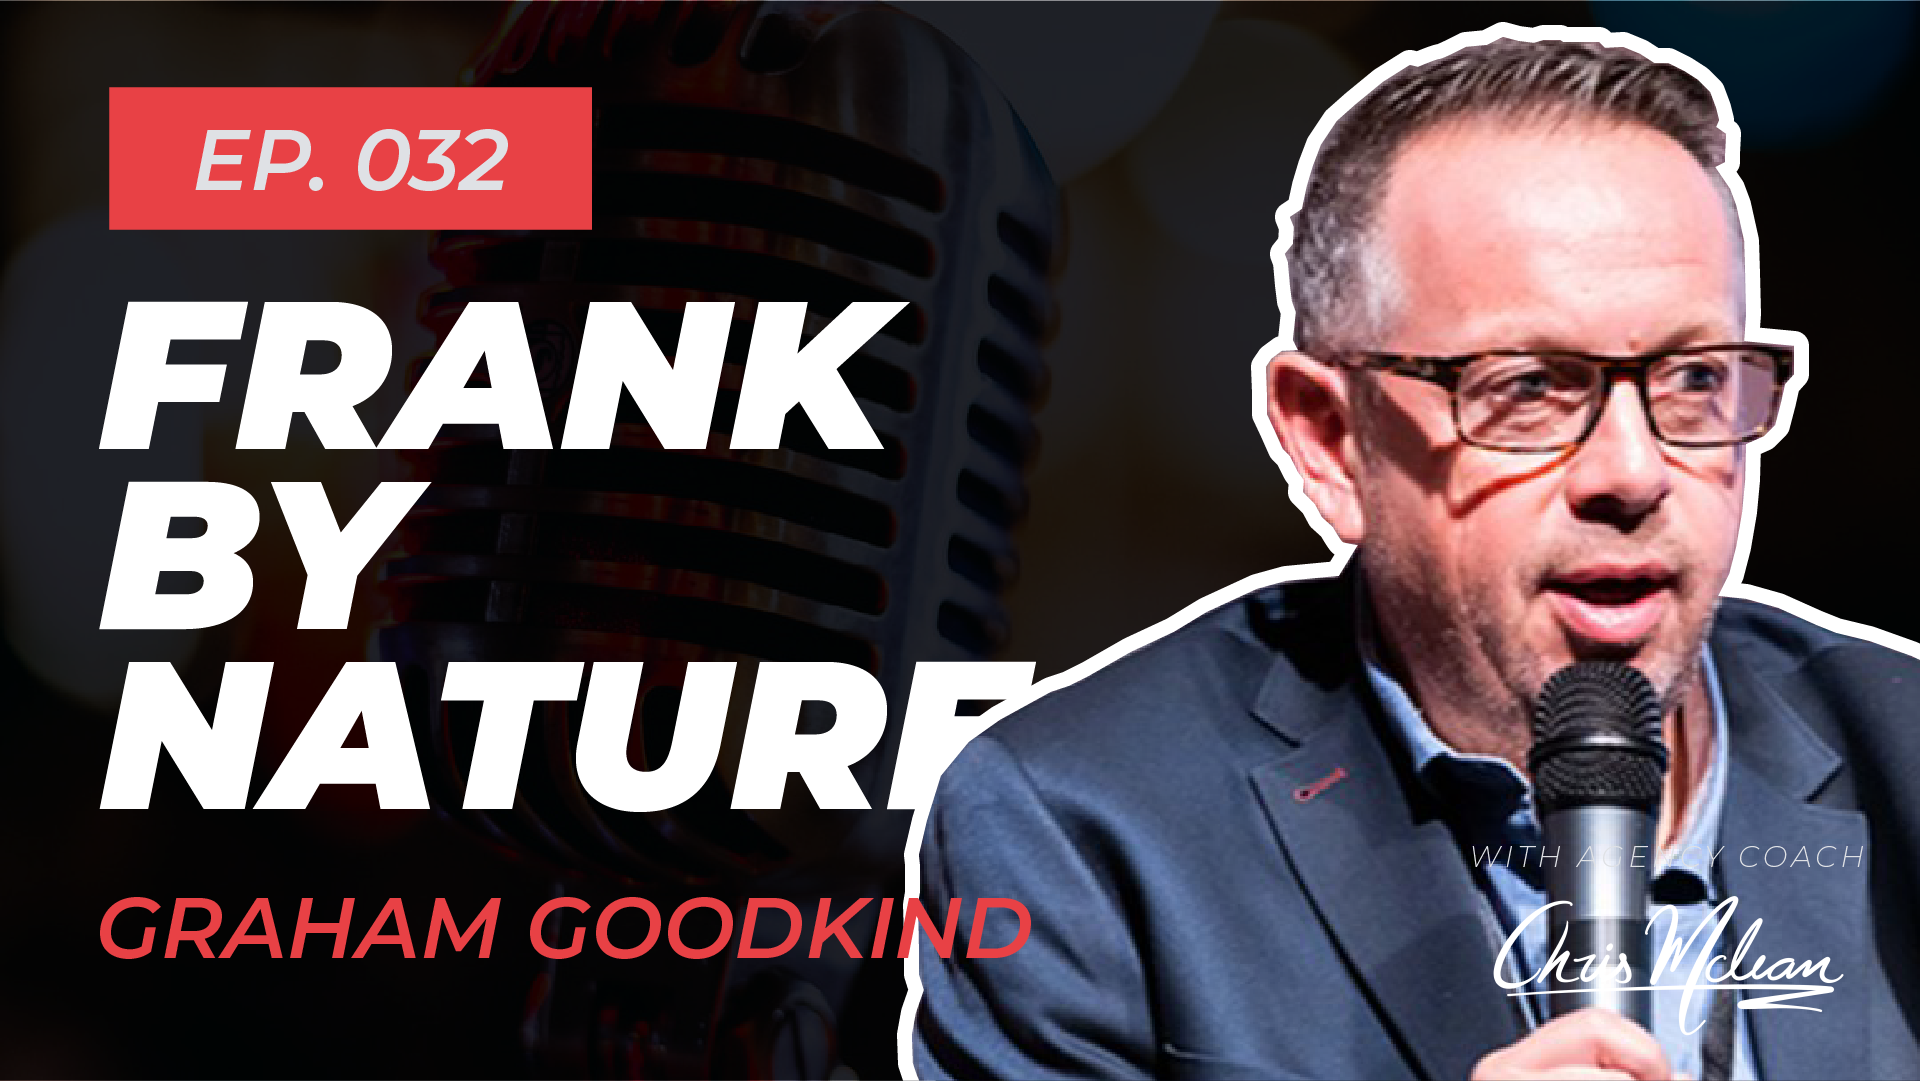 EP032 | Frank by Nature with Graham Goodkind